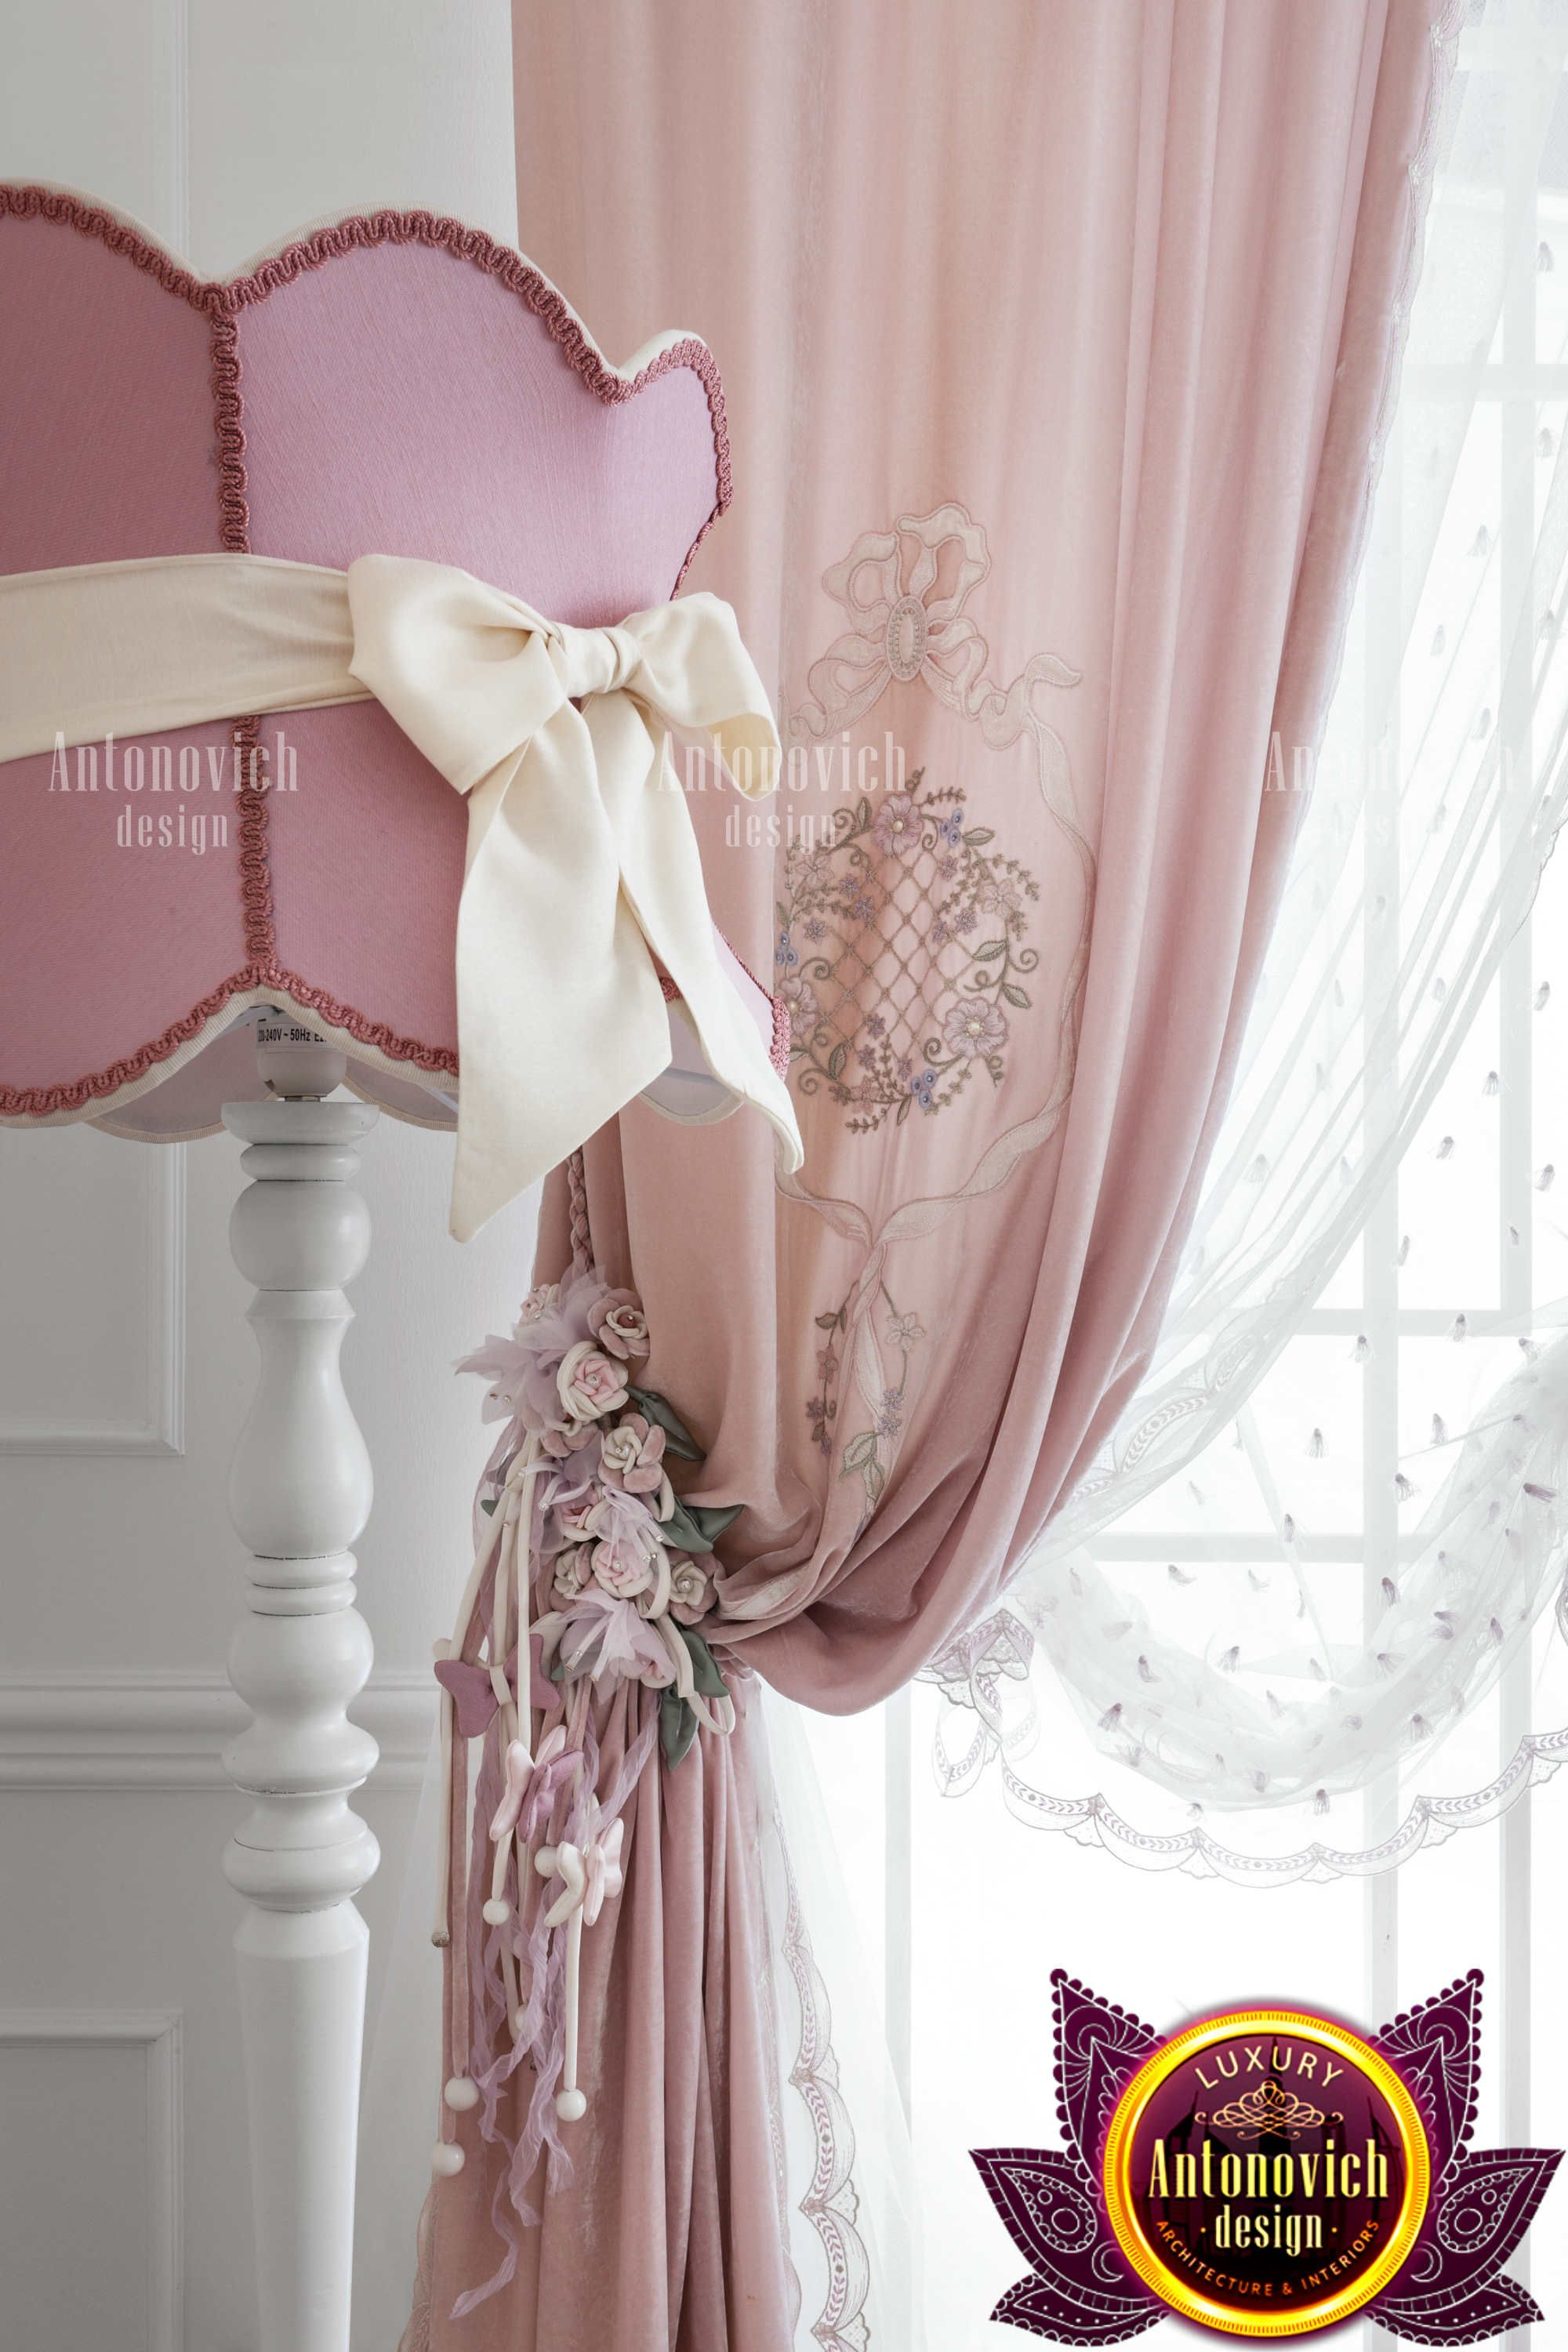 Tailoring Of Curtains In Luxury Antonovich Design Is Made Of